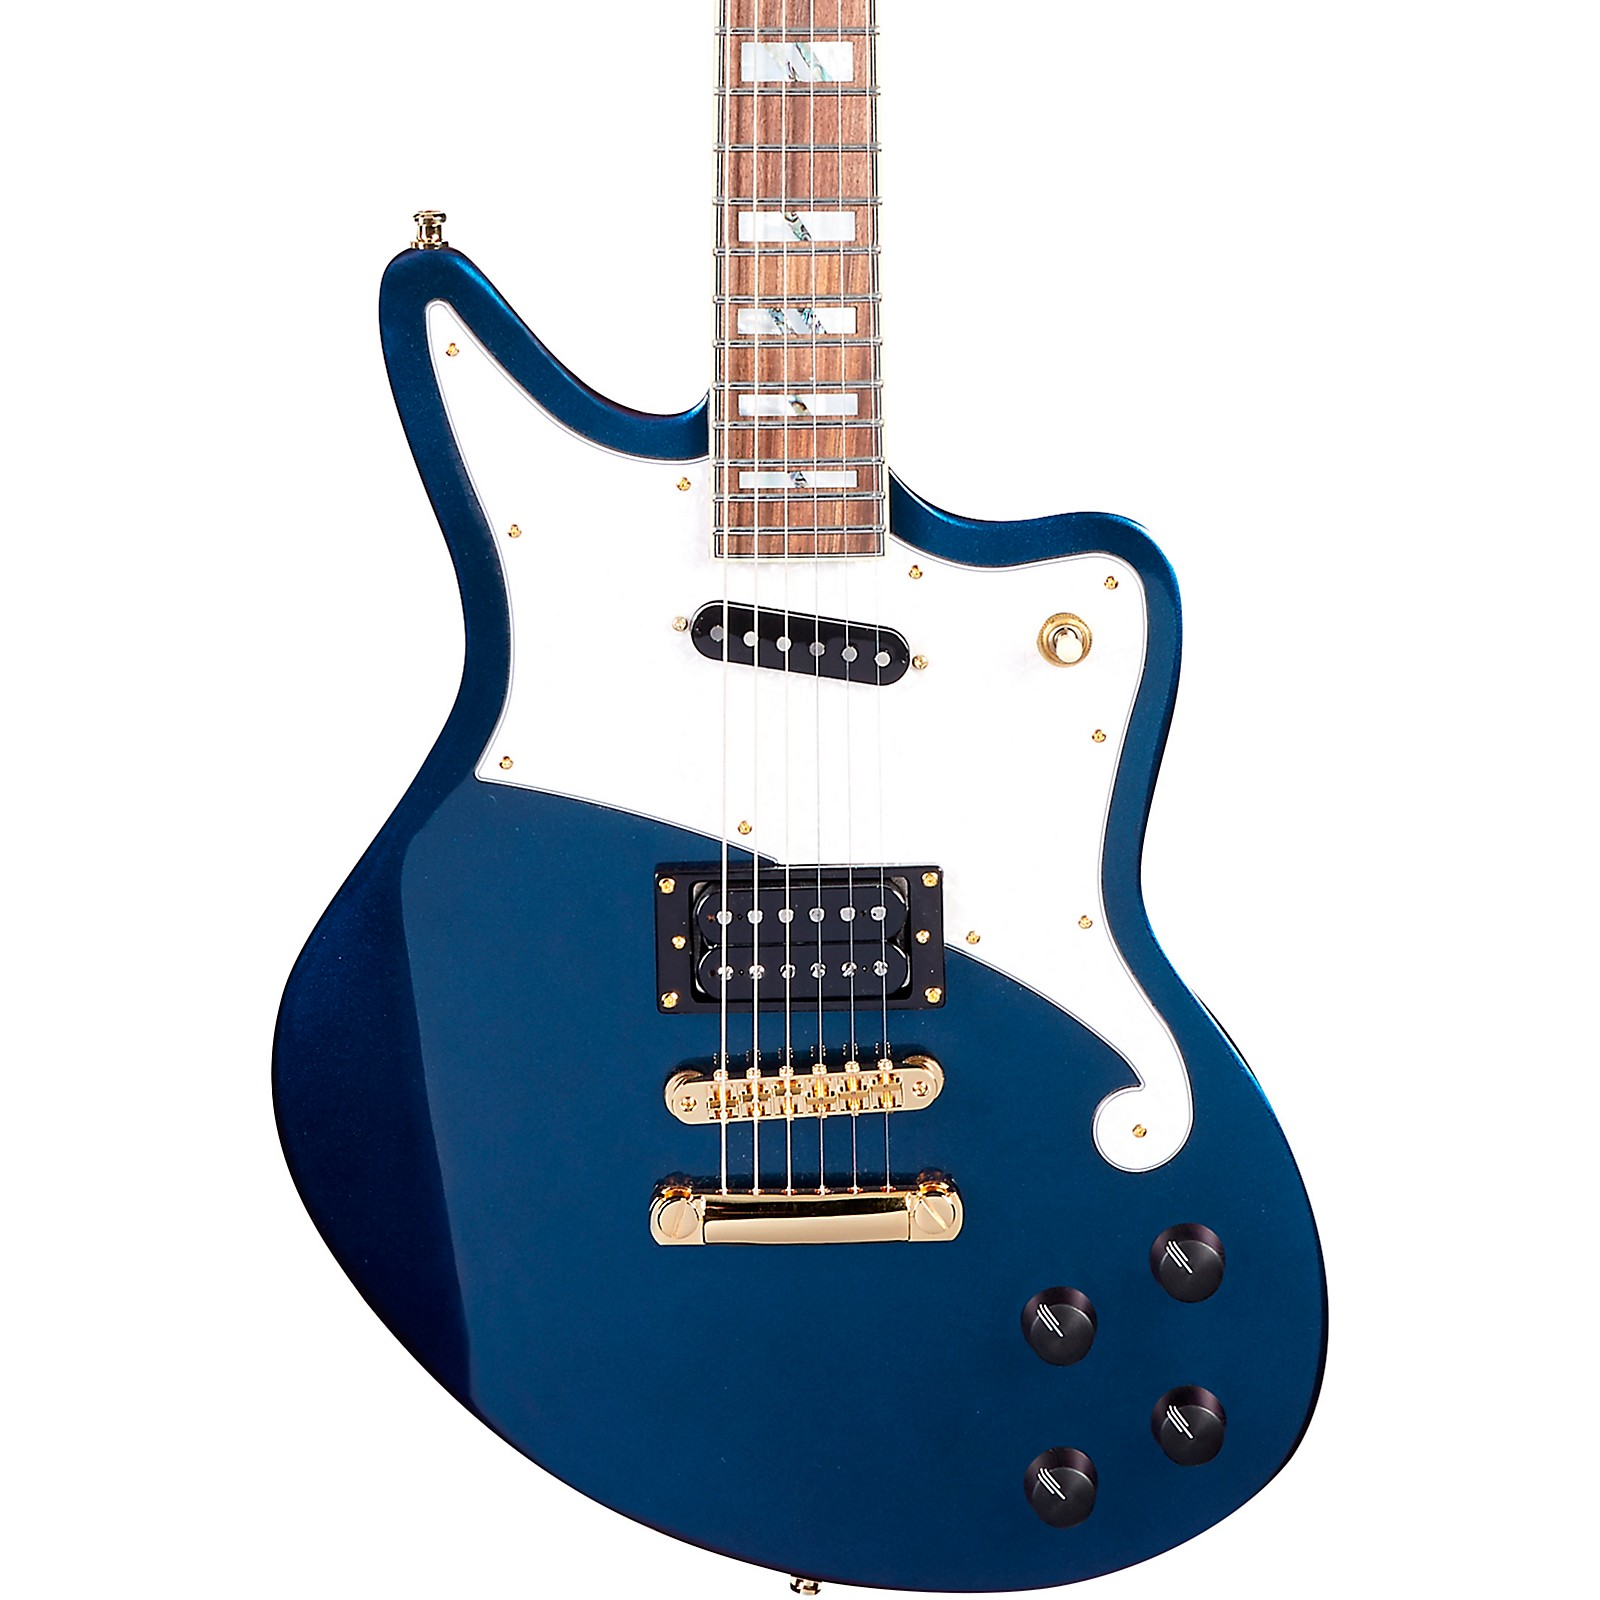 Open Box D'Angelico Deluxe Series Bedford Electric Guitar with Stopbar Tailpiece